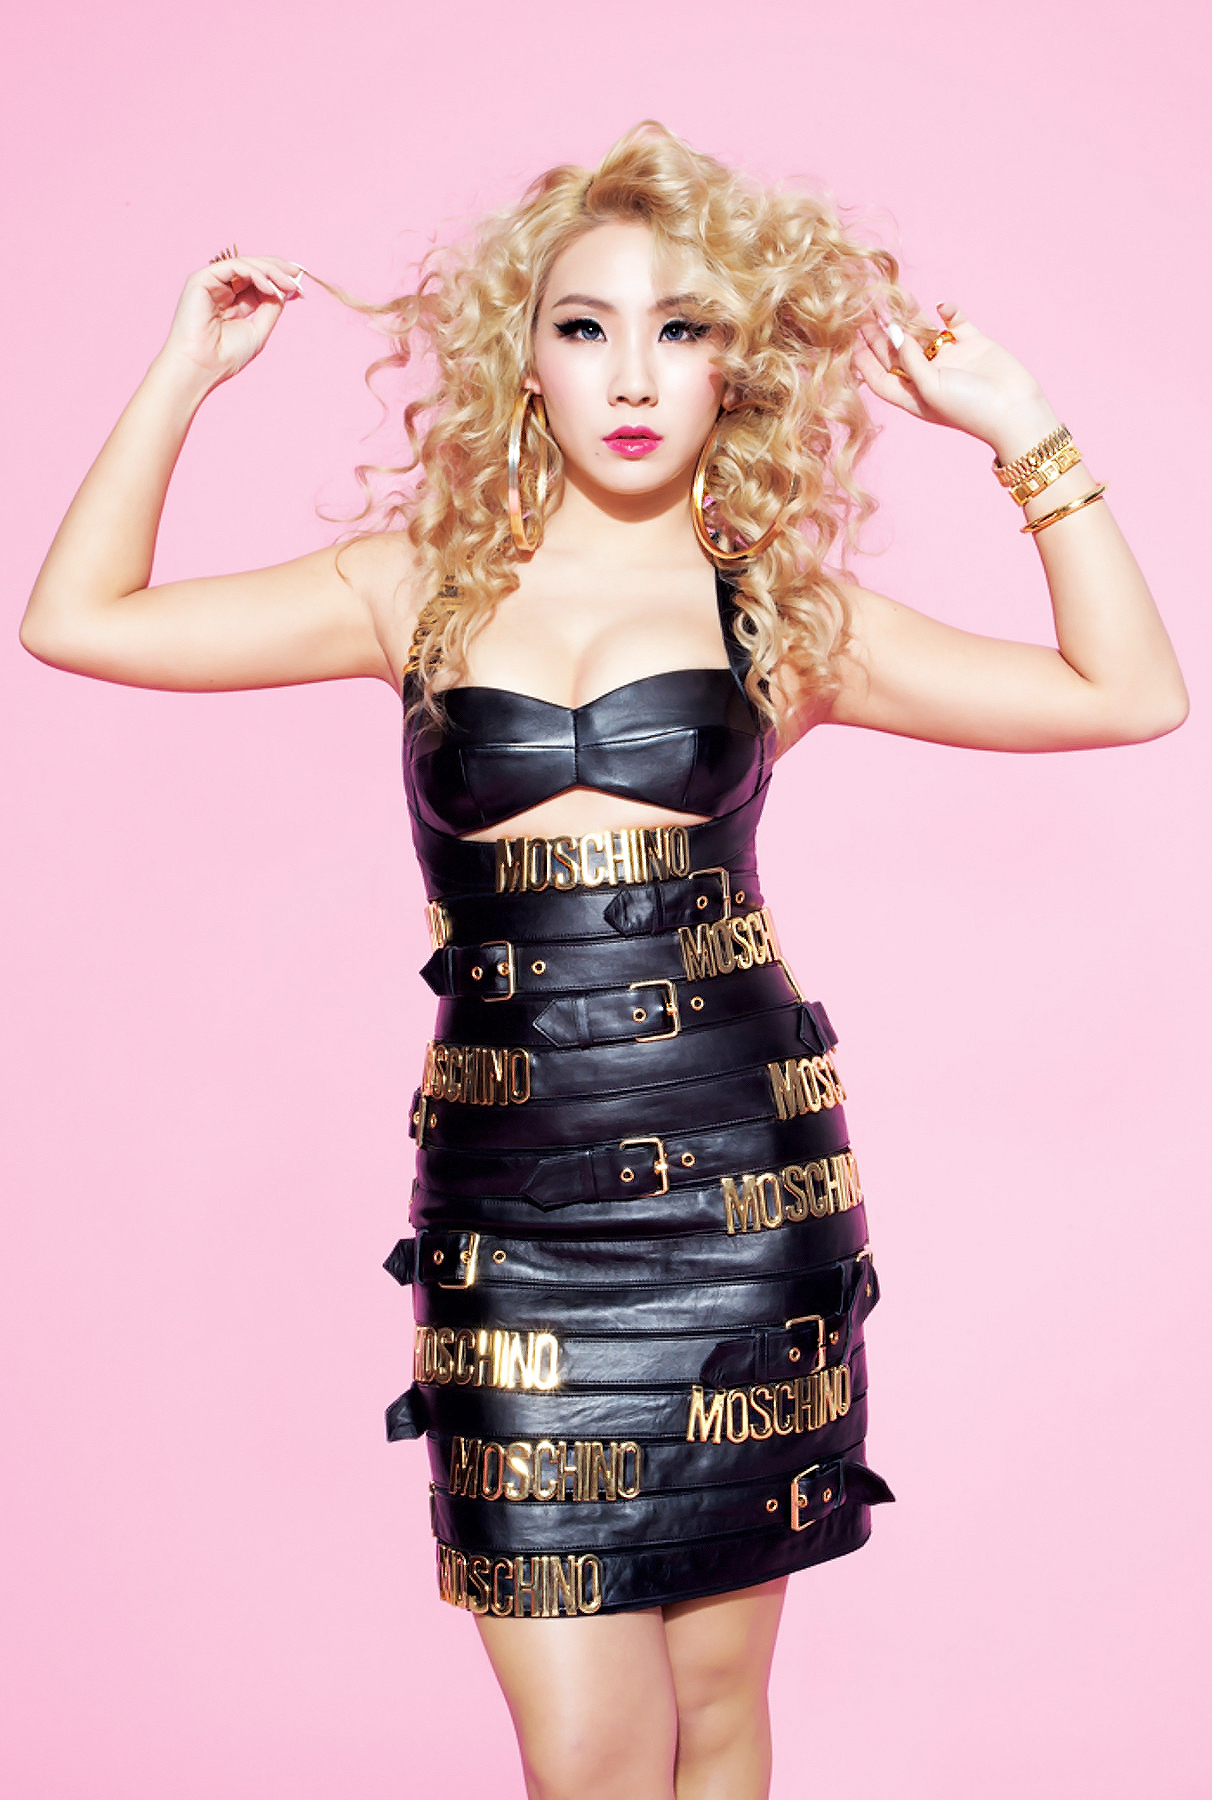 Cl Android Iphone Wallpaper 18599 Asiachan Kpop Image Board